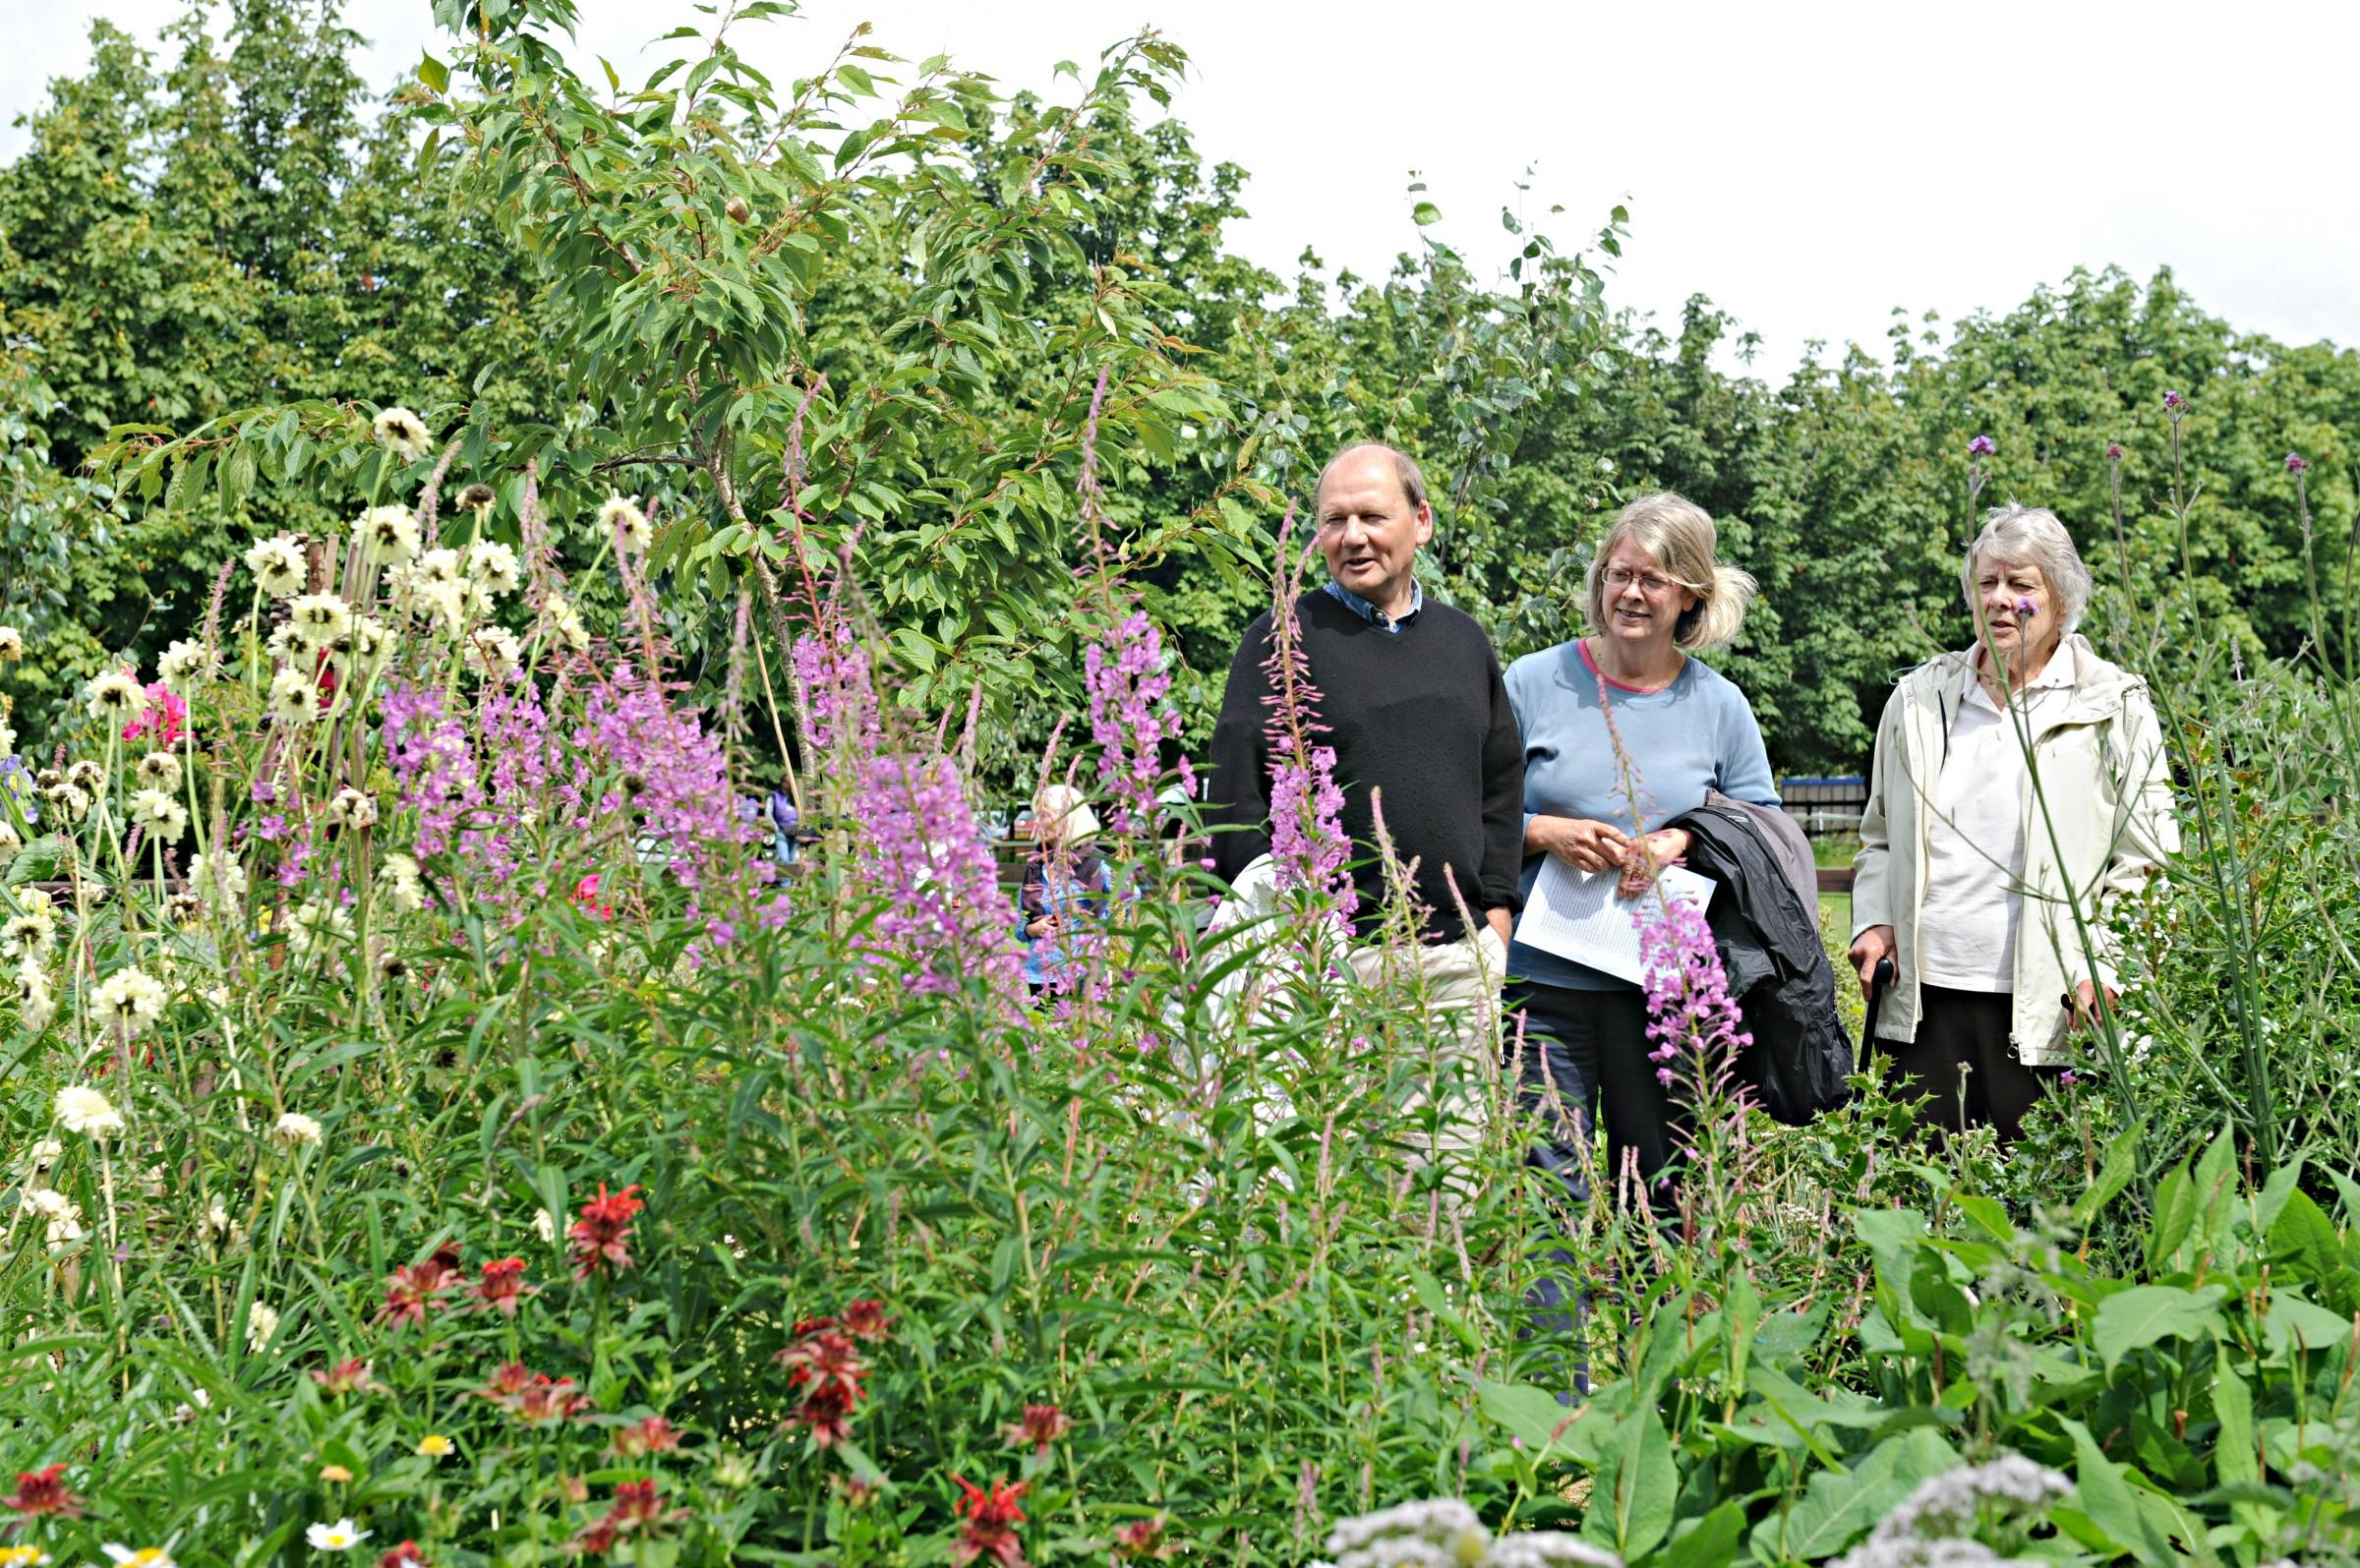 Landowner opens five acre gardens for hospice movement